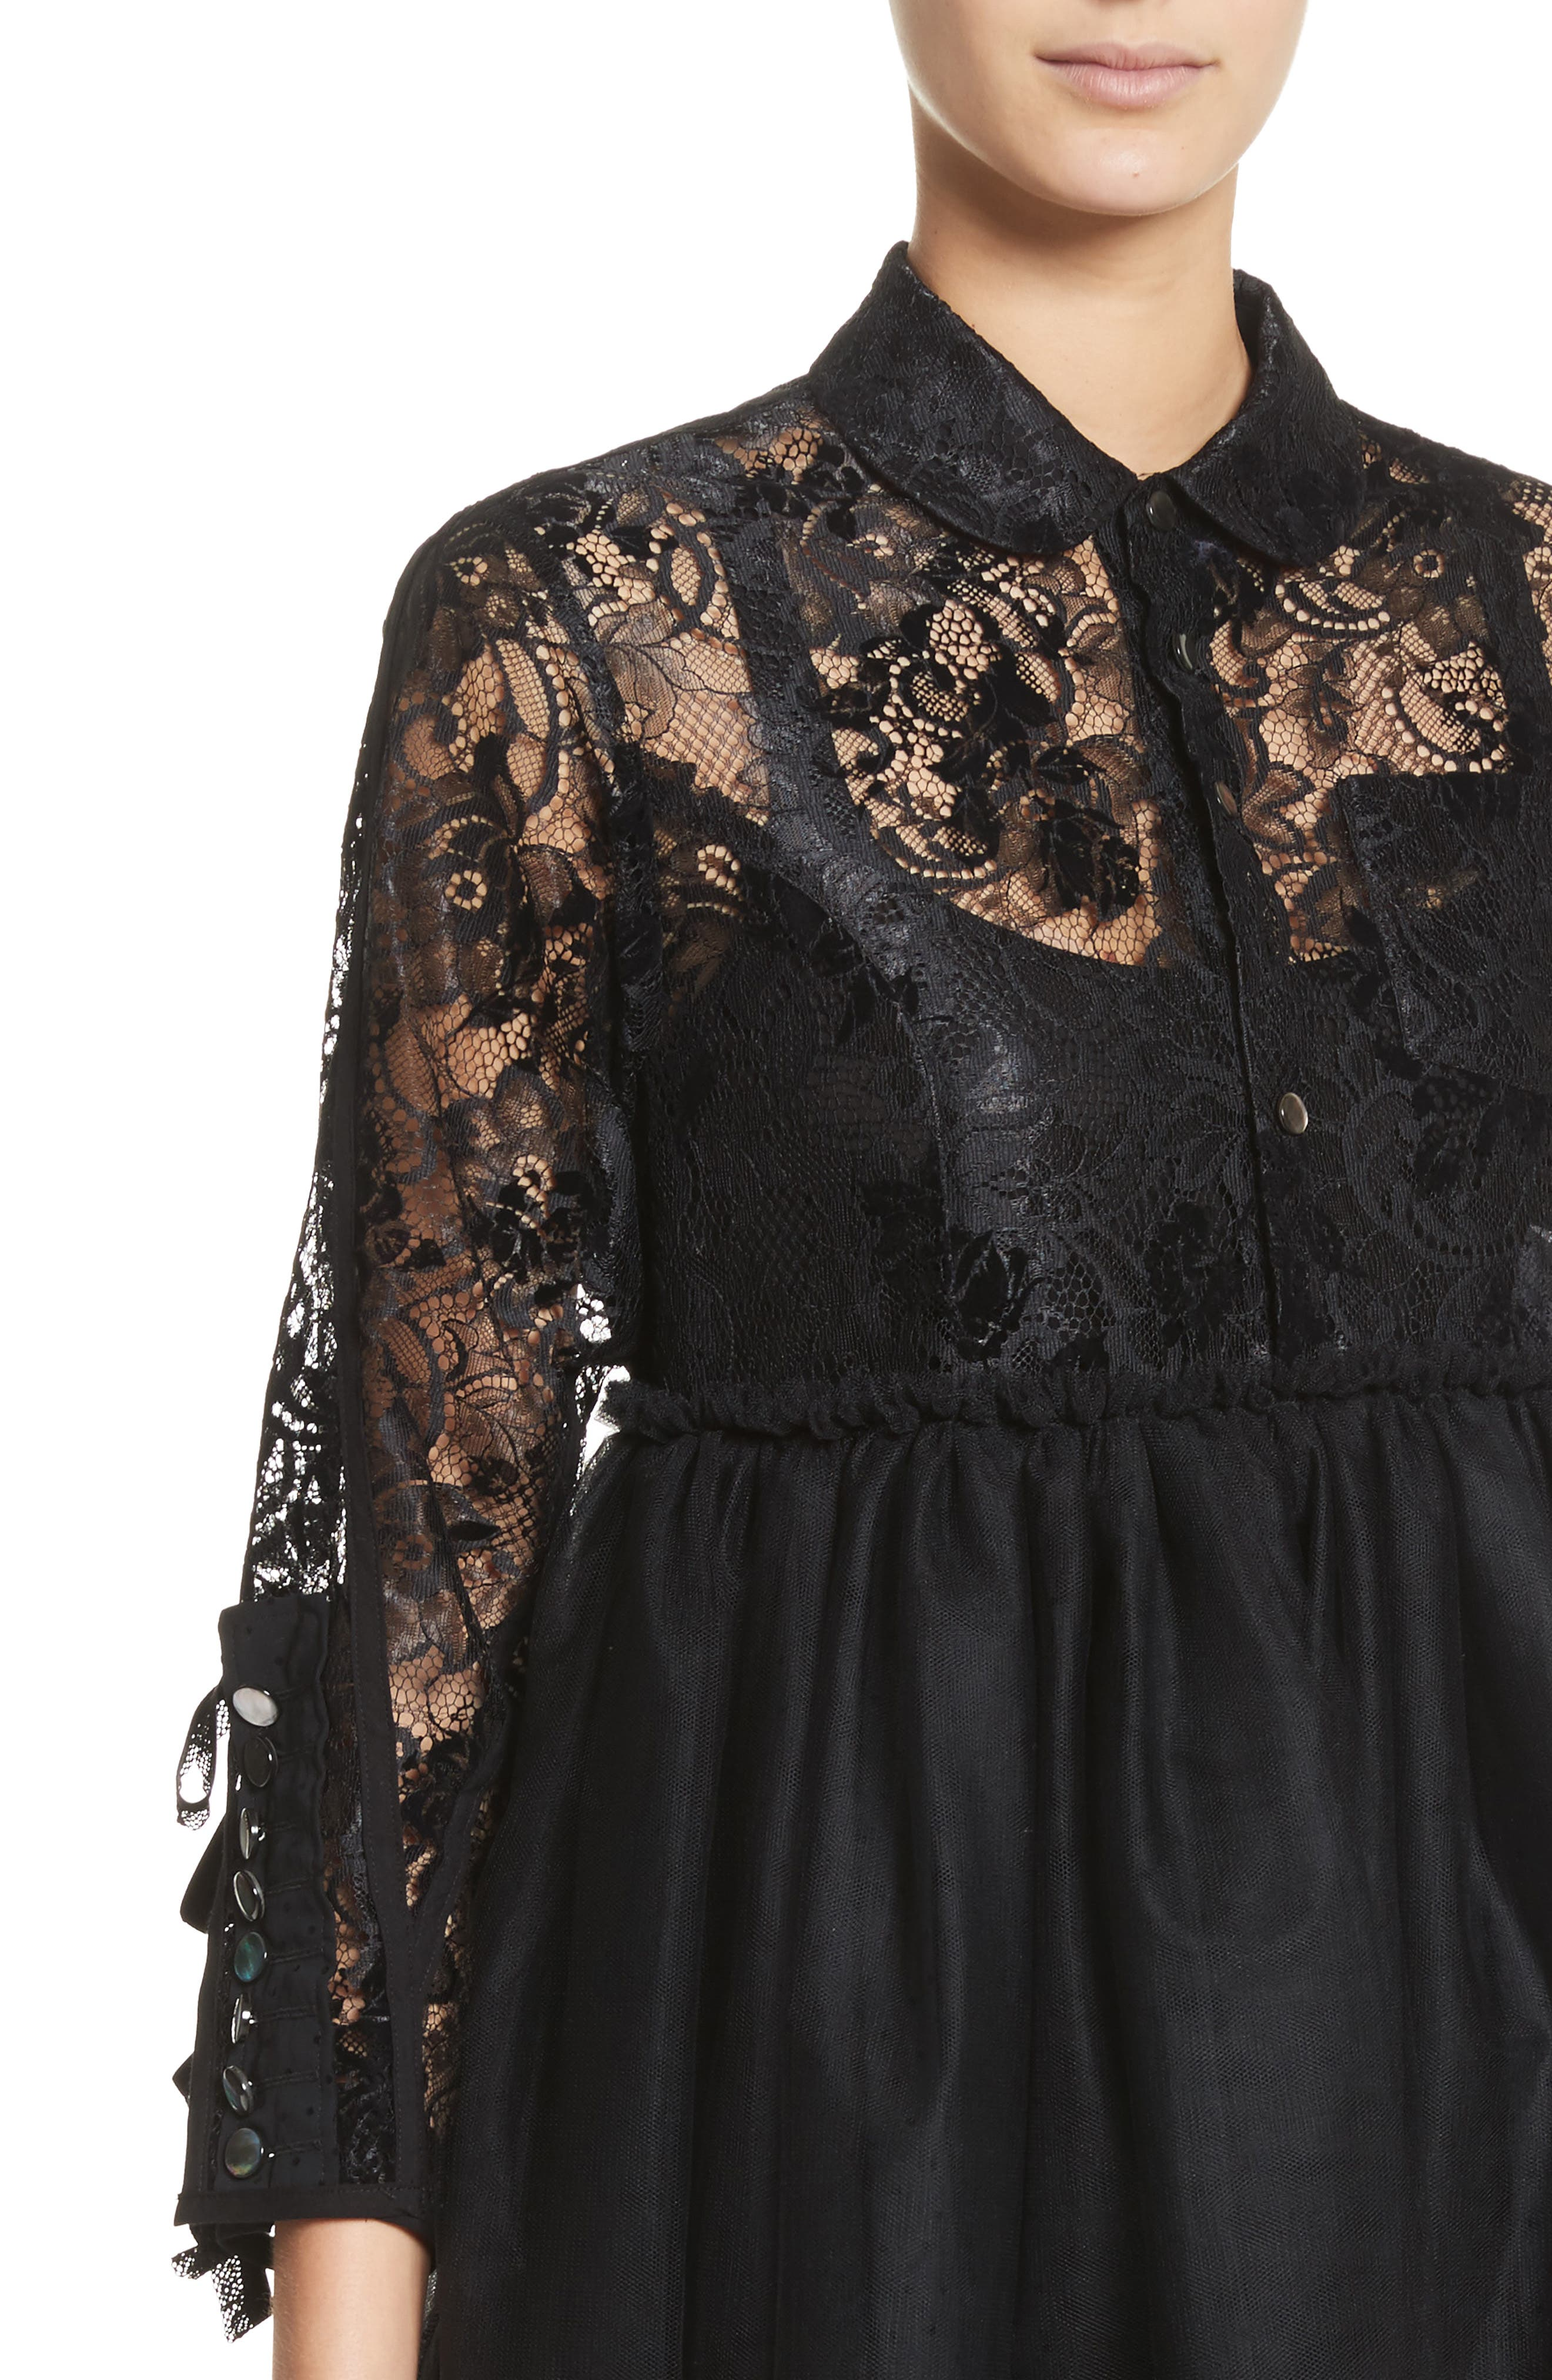 Lace Bodice Shirtdress with Tulle Skirt,                             Alternate thumbnail 4, color,                             011